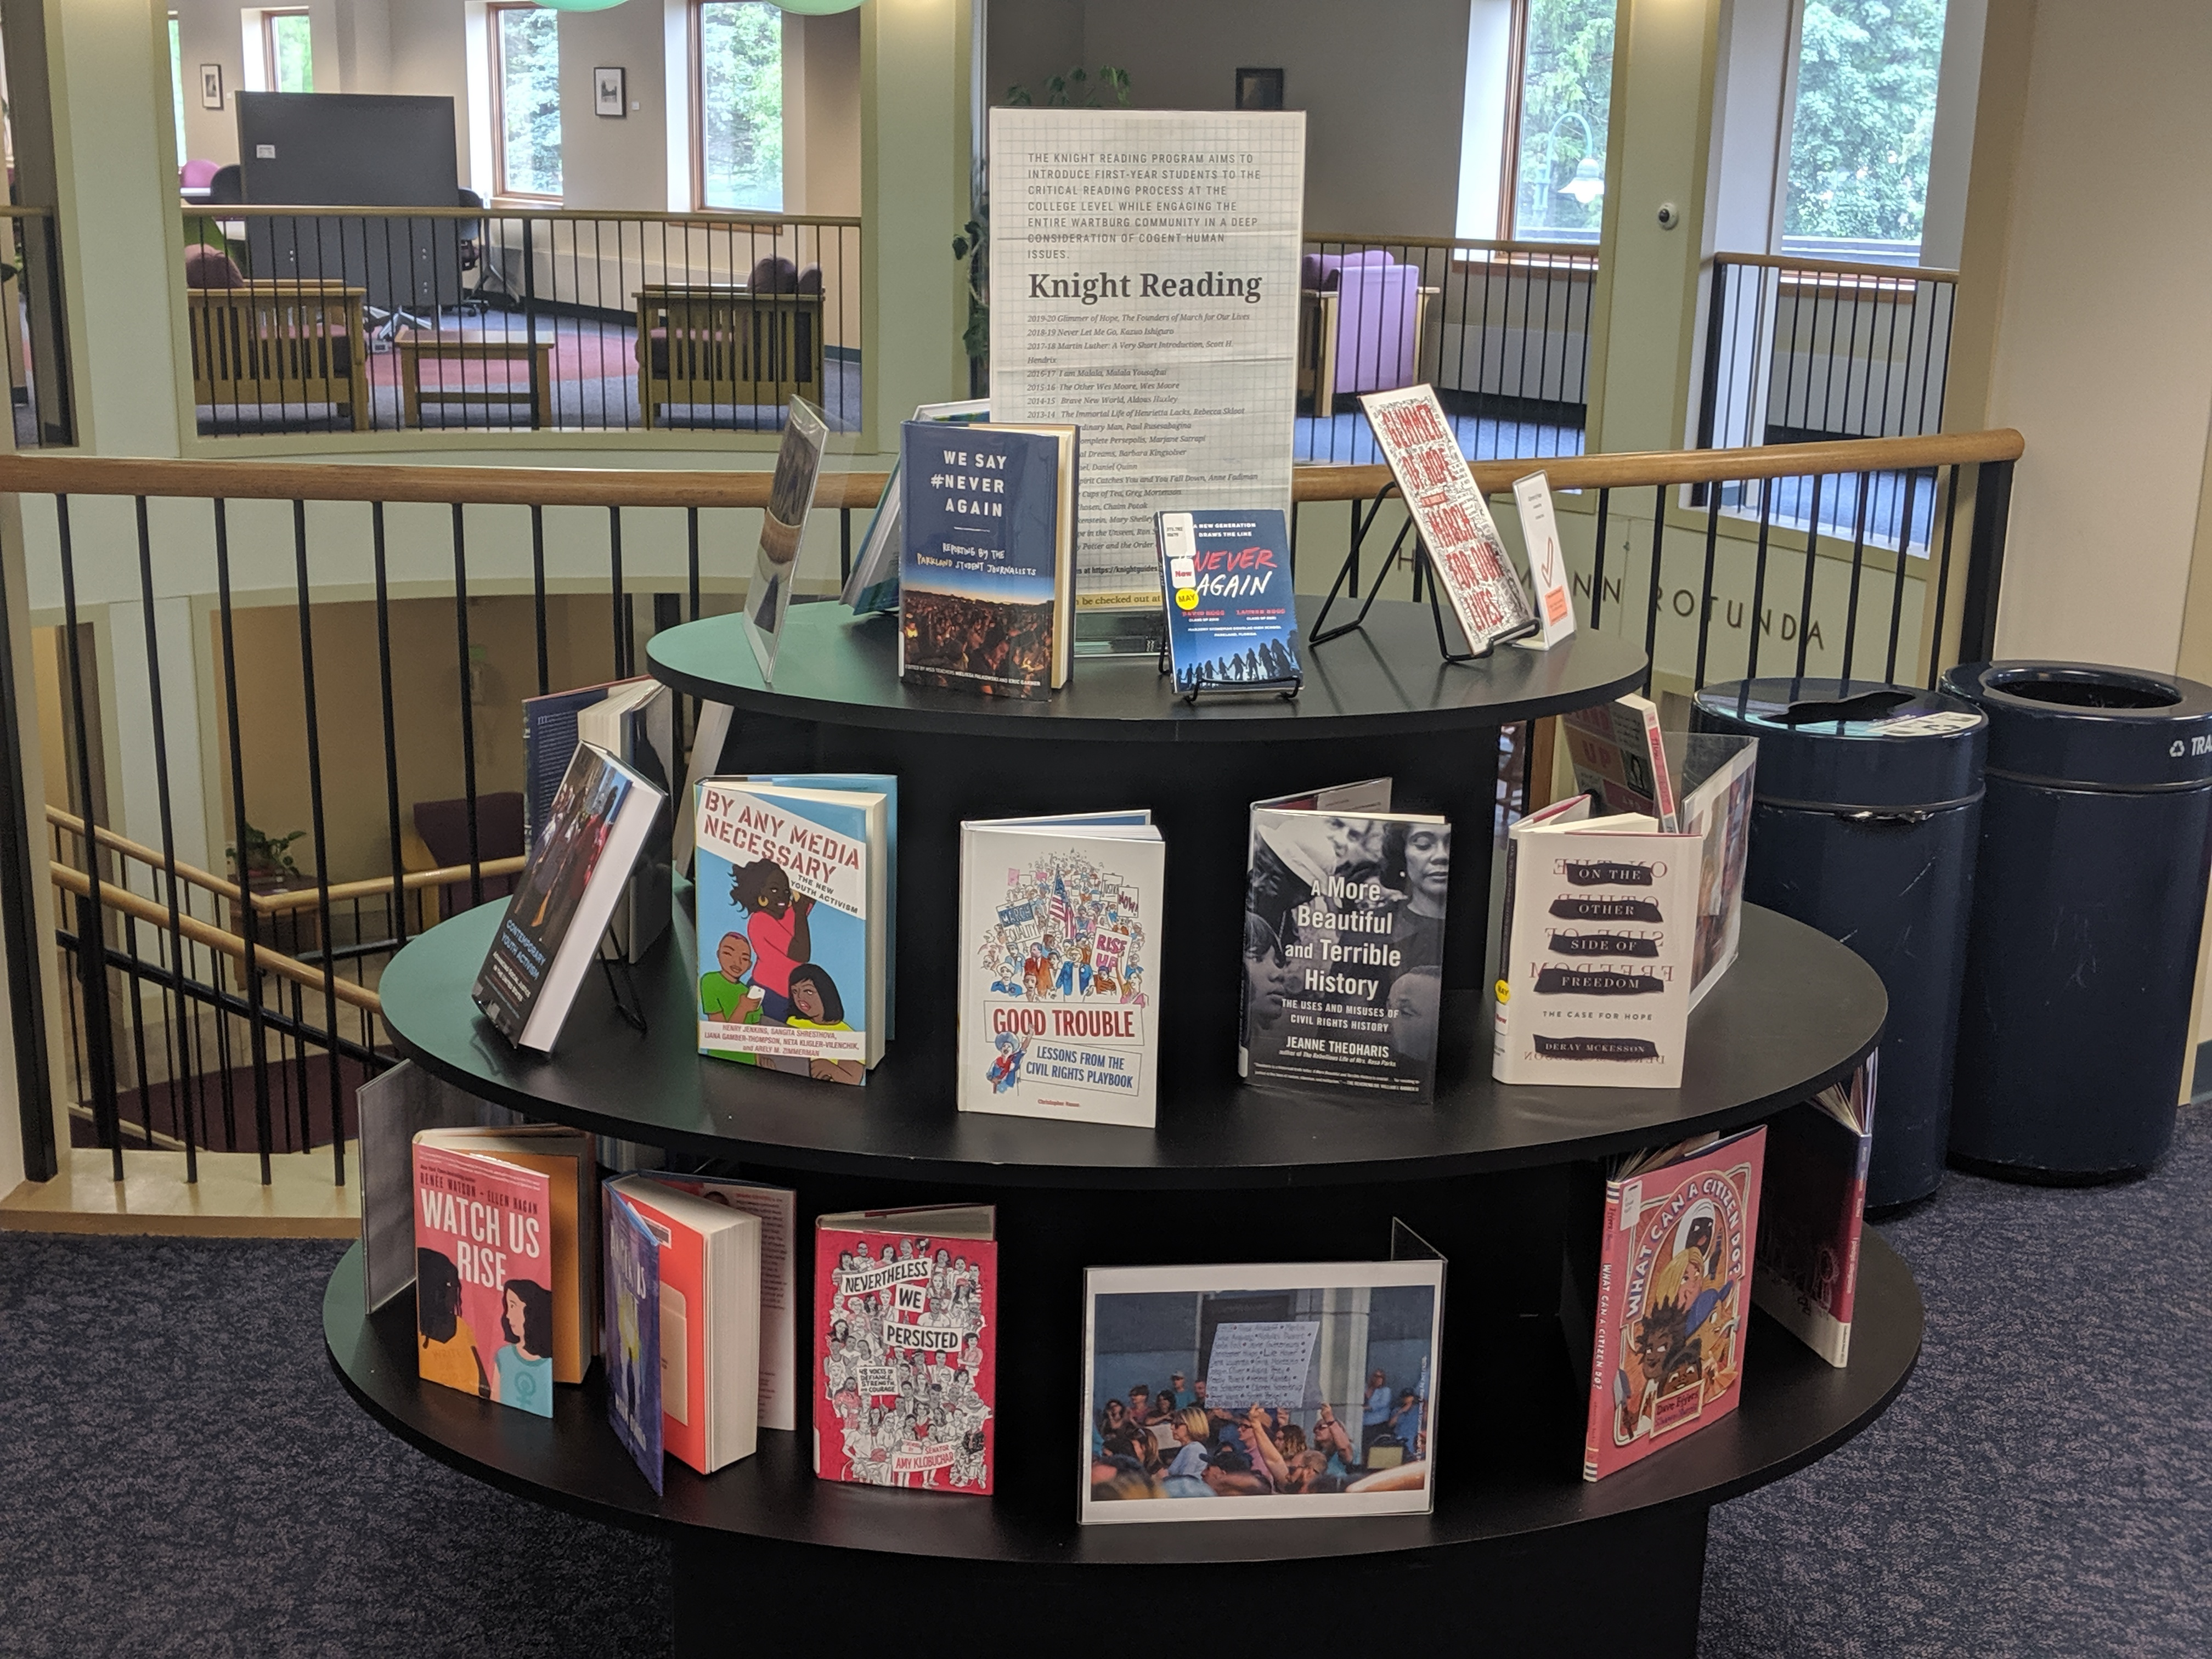 image is of Glimmer of Hope book display at Vogel Library